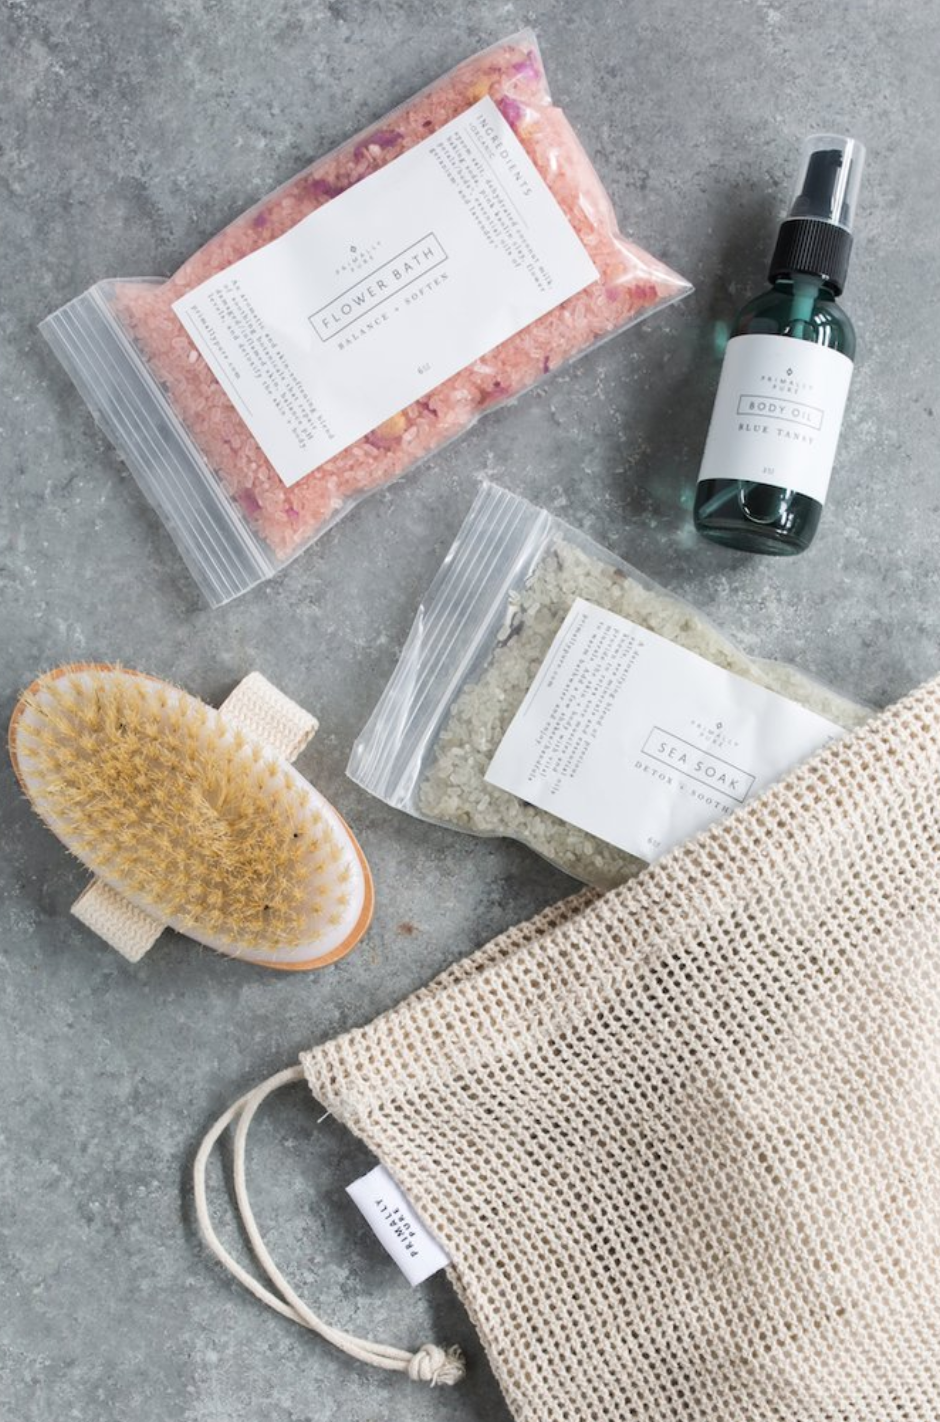 Primally Pure Spa Kit | Kind Gift Guide akindjourney.com